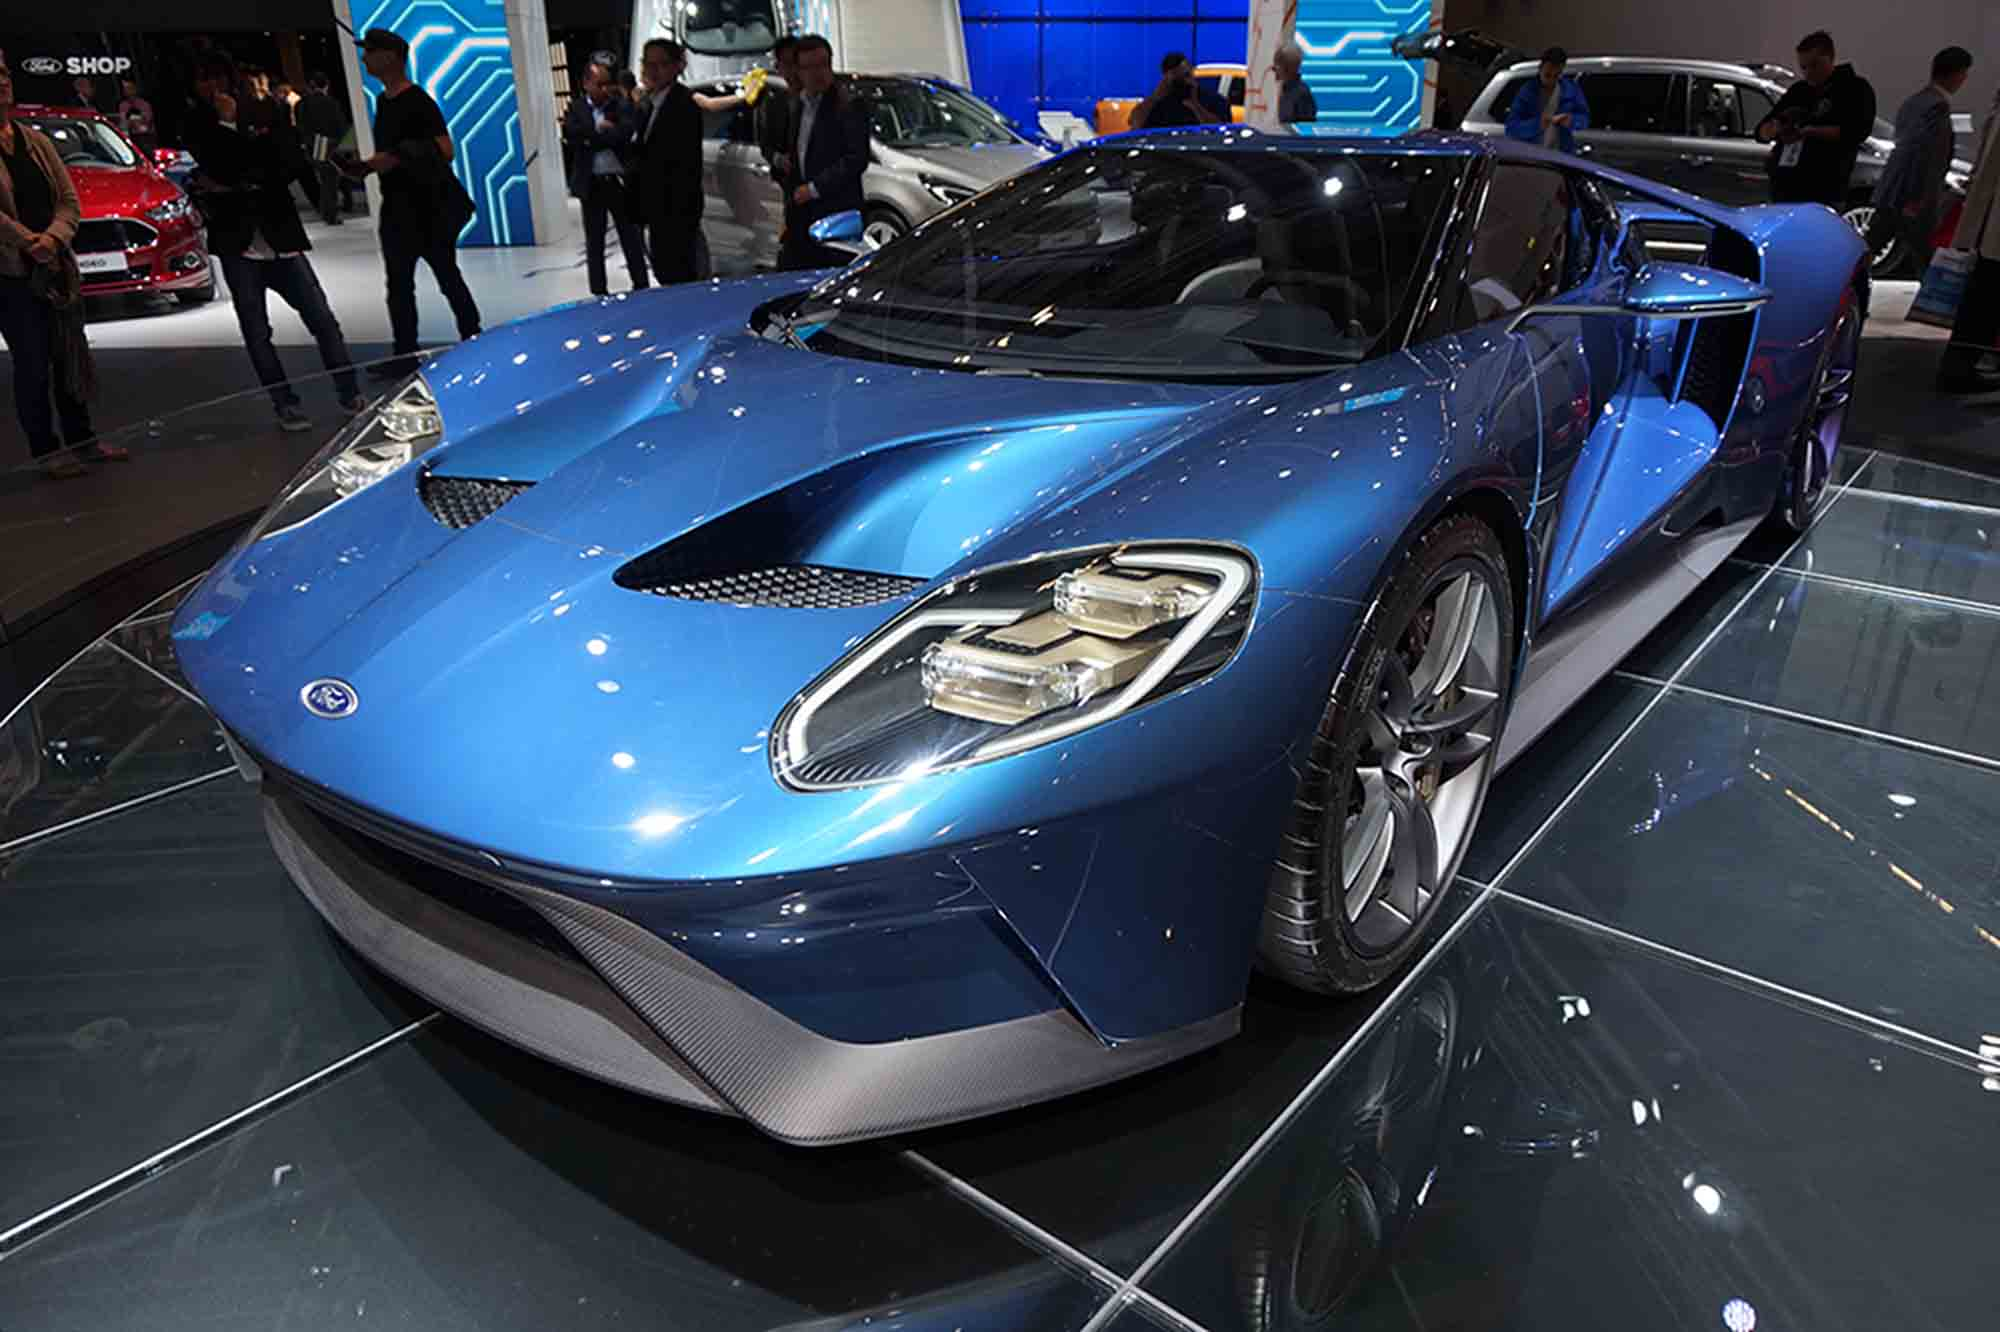 All Cars for Sale Elegant All New ford Gt Supercar Car Dealerships Uk